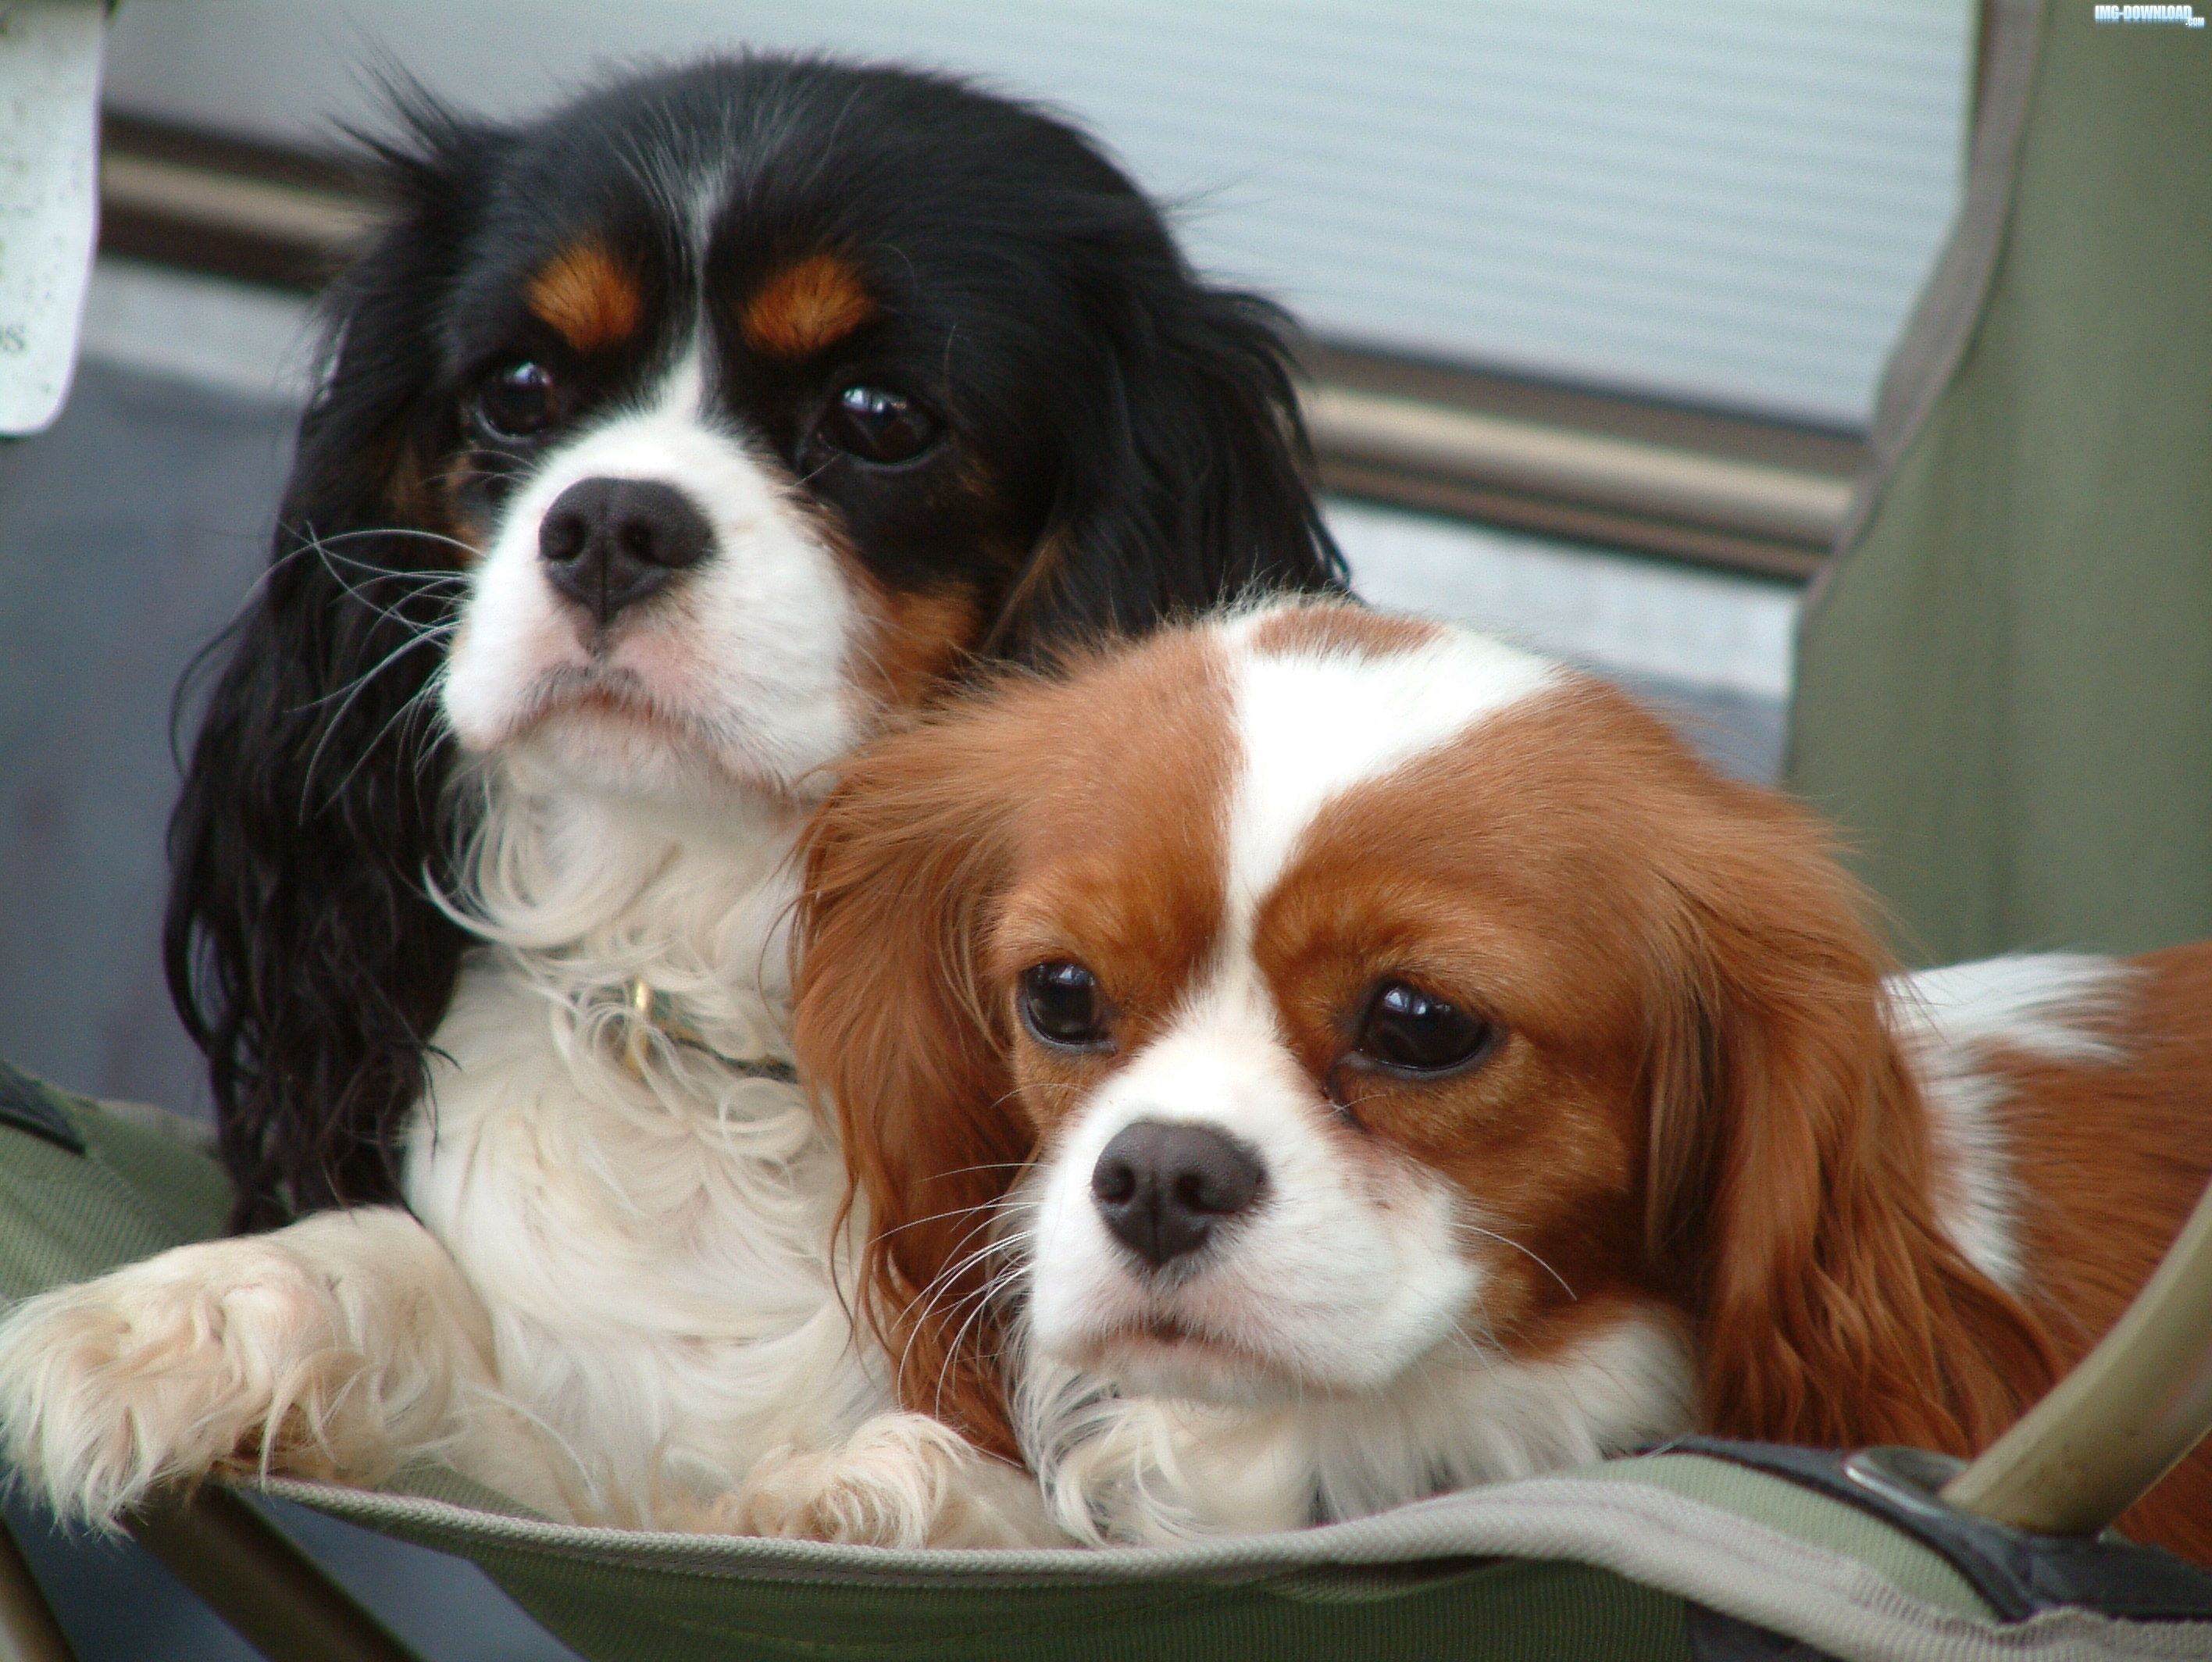 Cavalier King Charles Spaniel Dogs Image Wallpaper (With